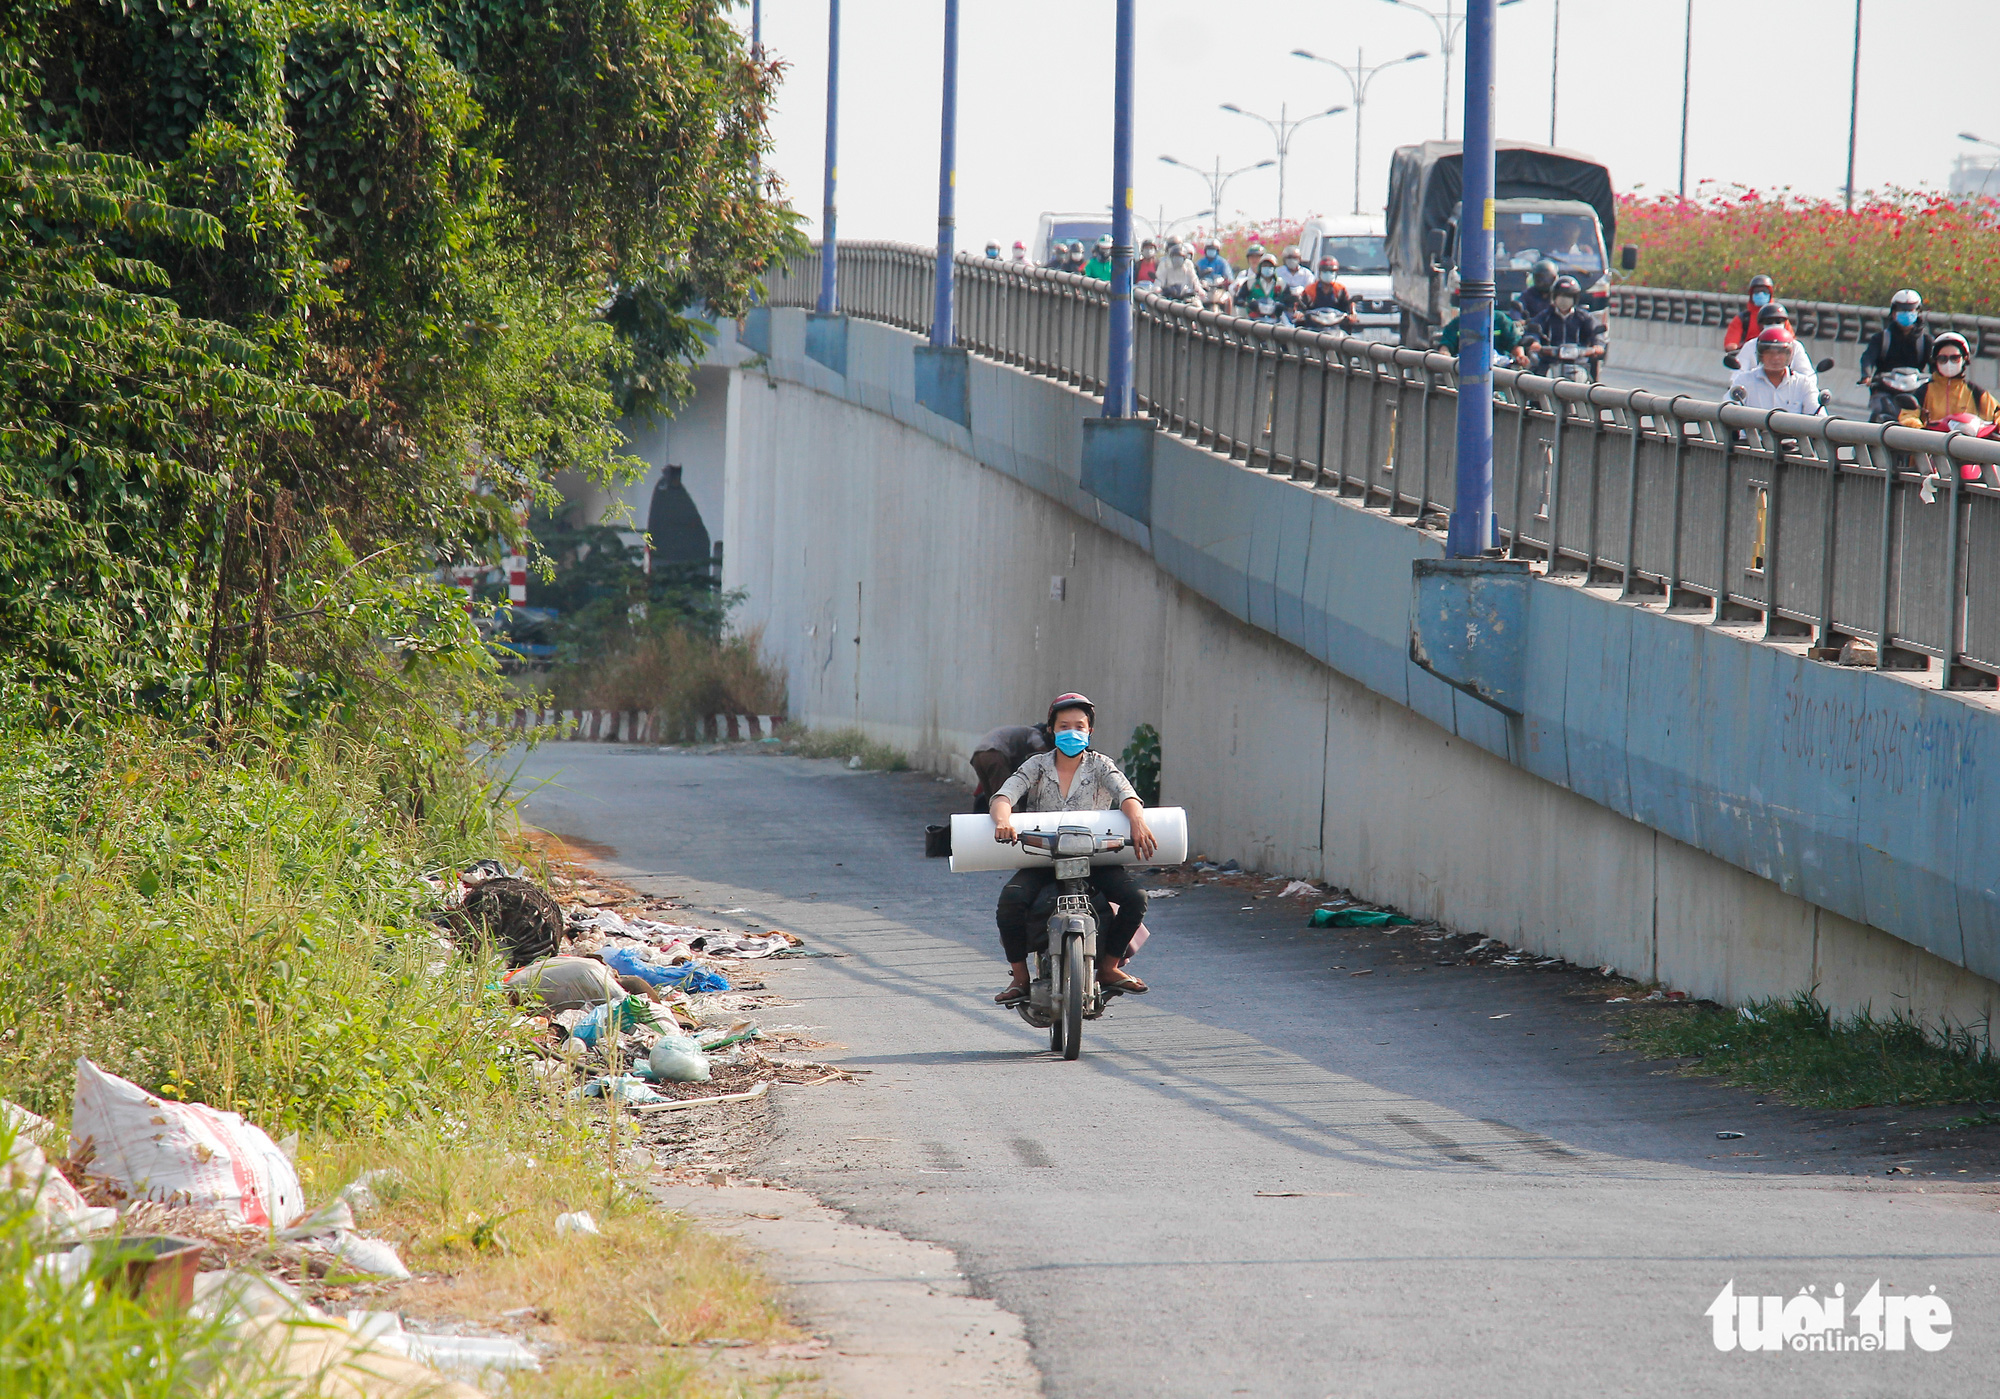 Trash is dumped at the foot of the Rach Chiec Bridge in Thu Duc City. Photo: Kim Ut / Tuoi Tre